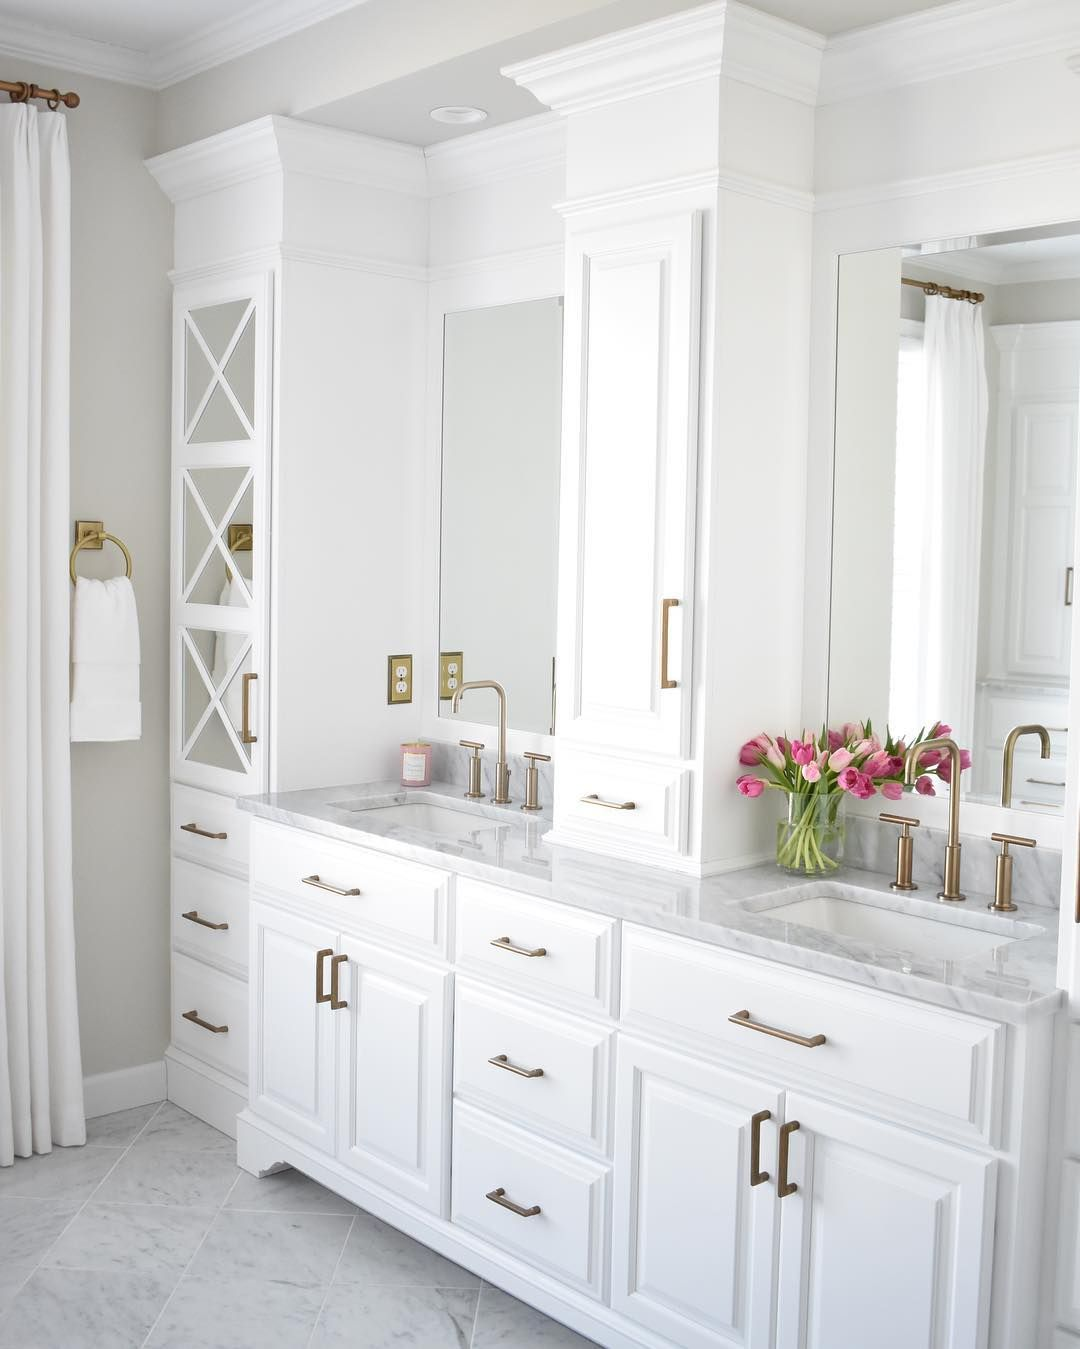 Pin By Tina Taylor On Shiplap: Pin By Champagne Maker On BATH Inspiration In 2019